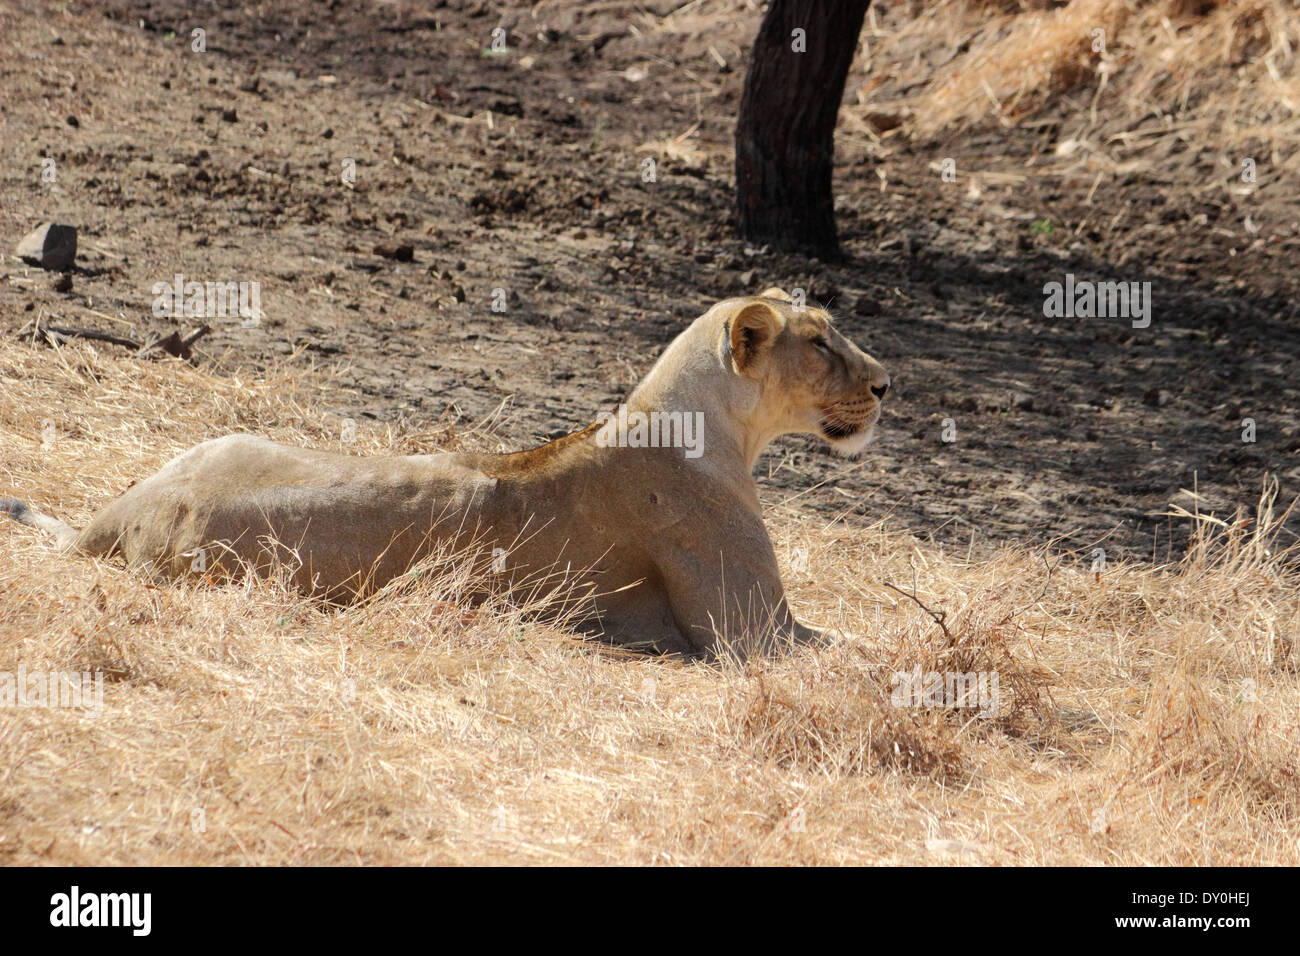 Lion of Gir forest in Gujarat - Stock Image